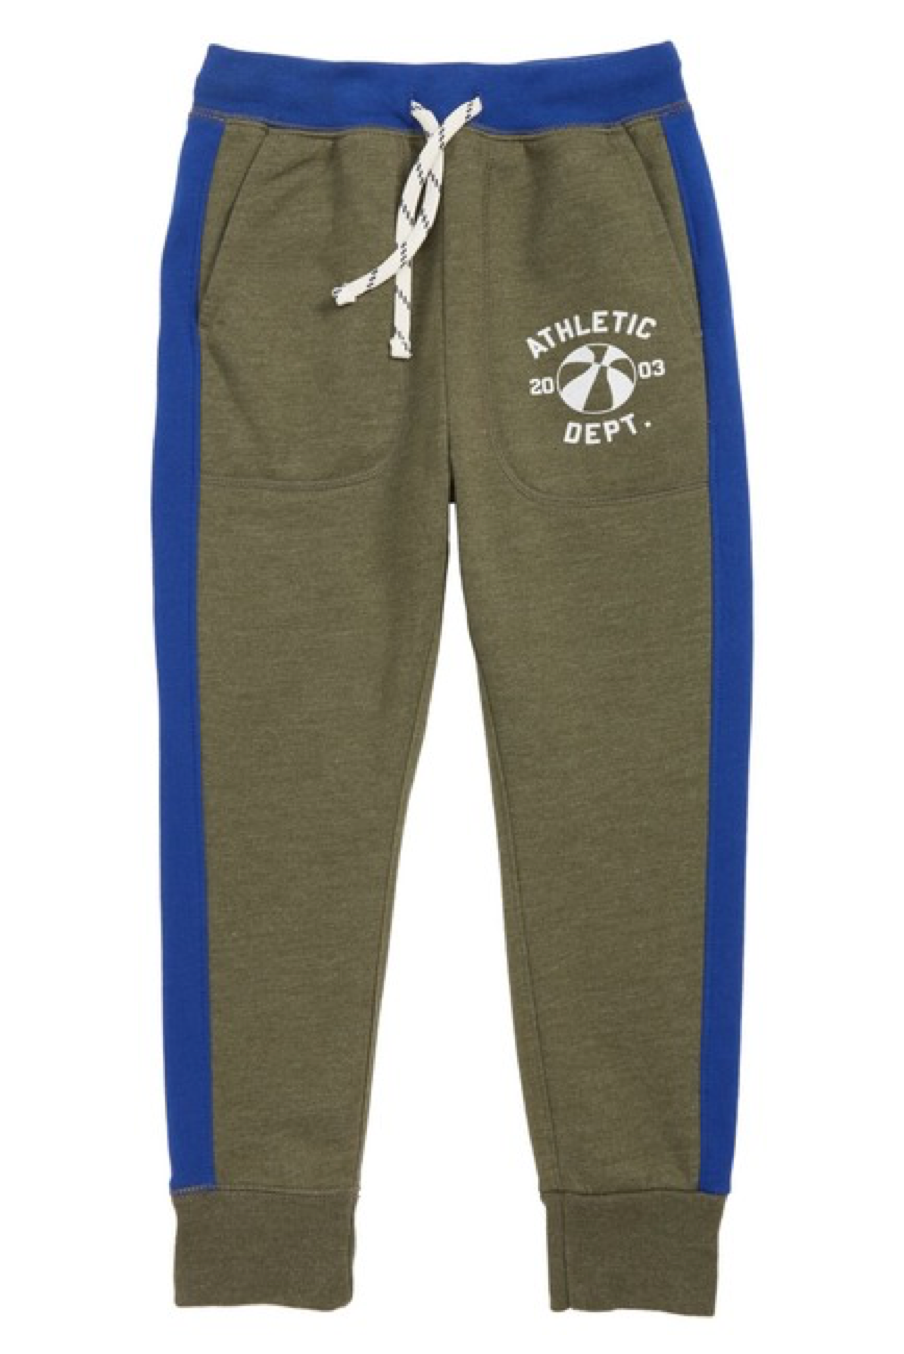 crewcuts Boys' Printed Sweatpants (Athletic Dept. in Olive)